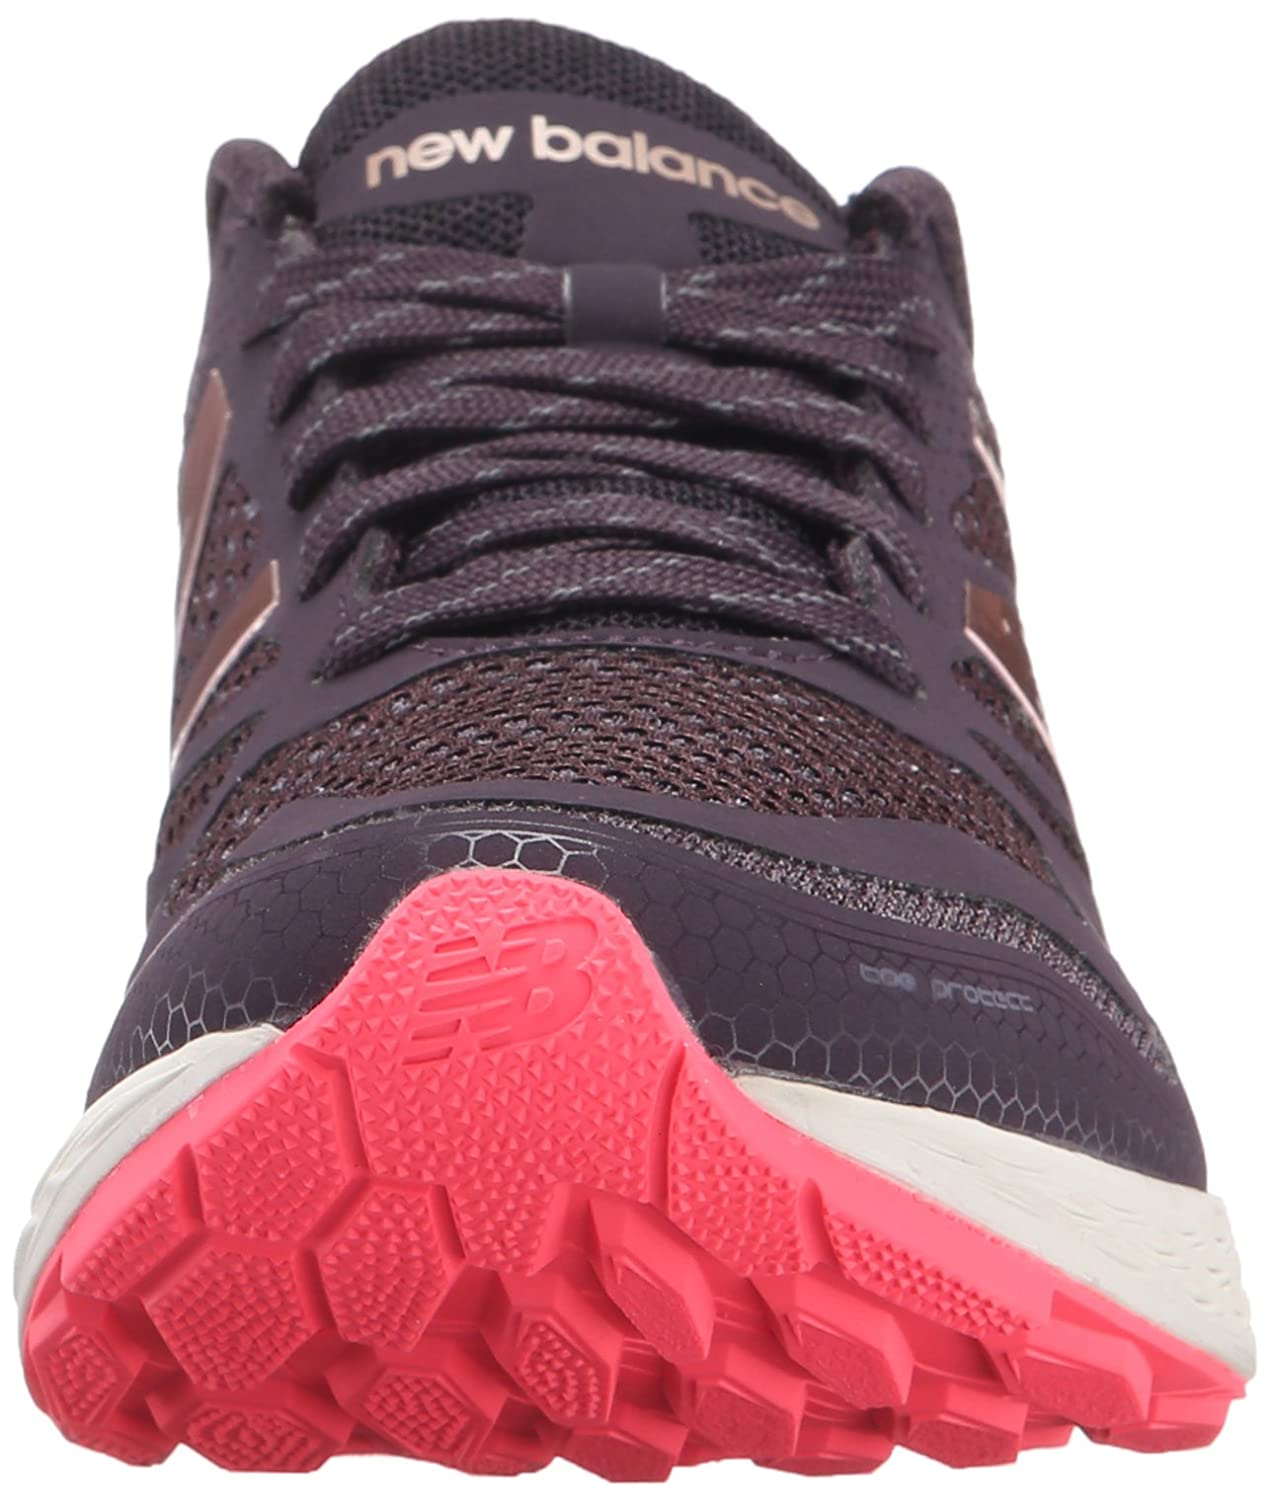 on sale 5e287 432f2 ... New Balance Women s Fresh Foam Gobi Neutral Neutral Neutral Trail Running  Shoe B019CVDD10 9.5 B( ...